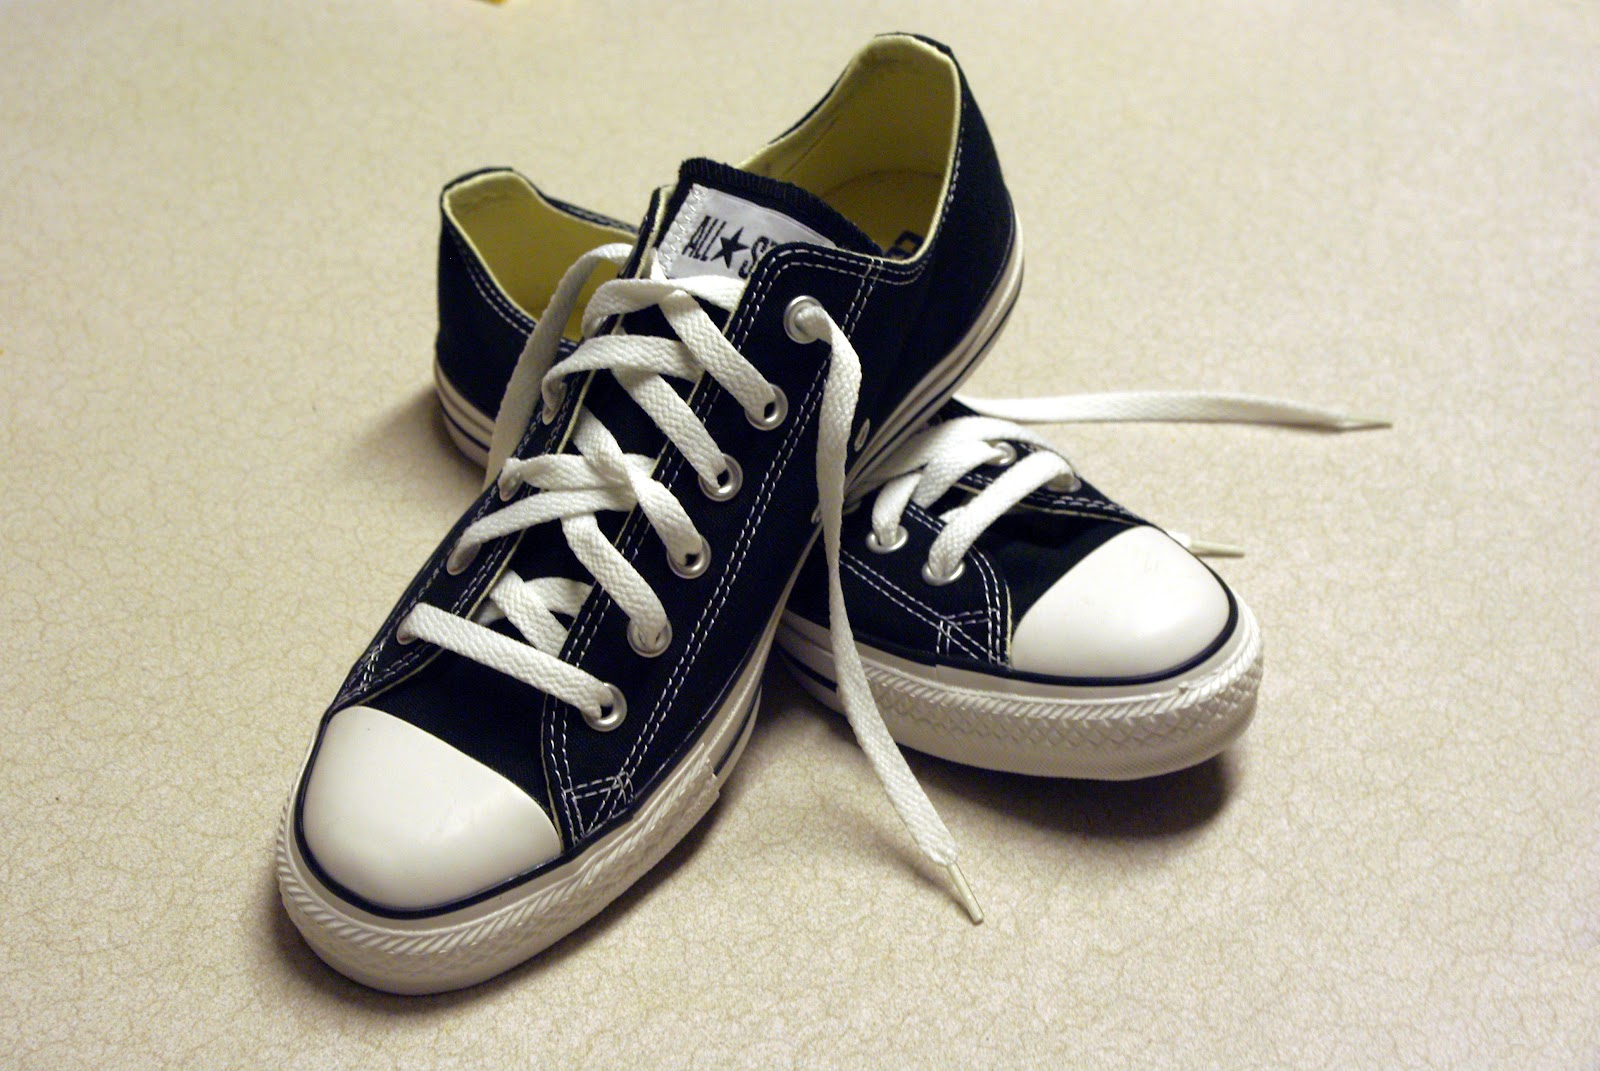 File:Black Converse sneakers.JPG - Wikimedia Commons